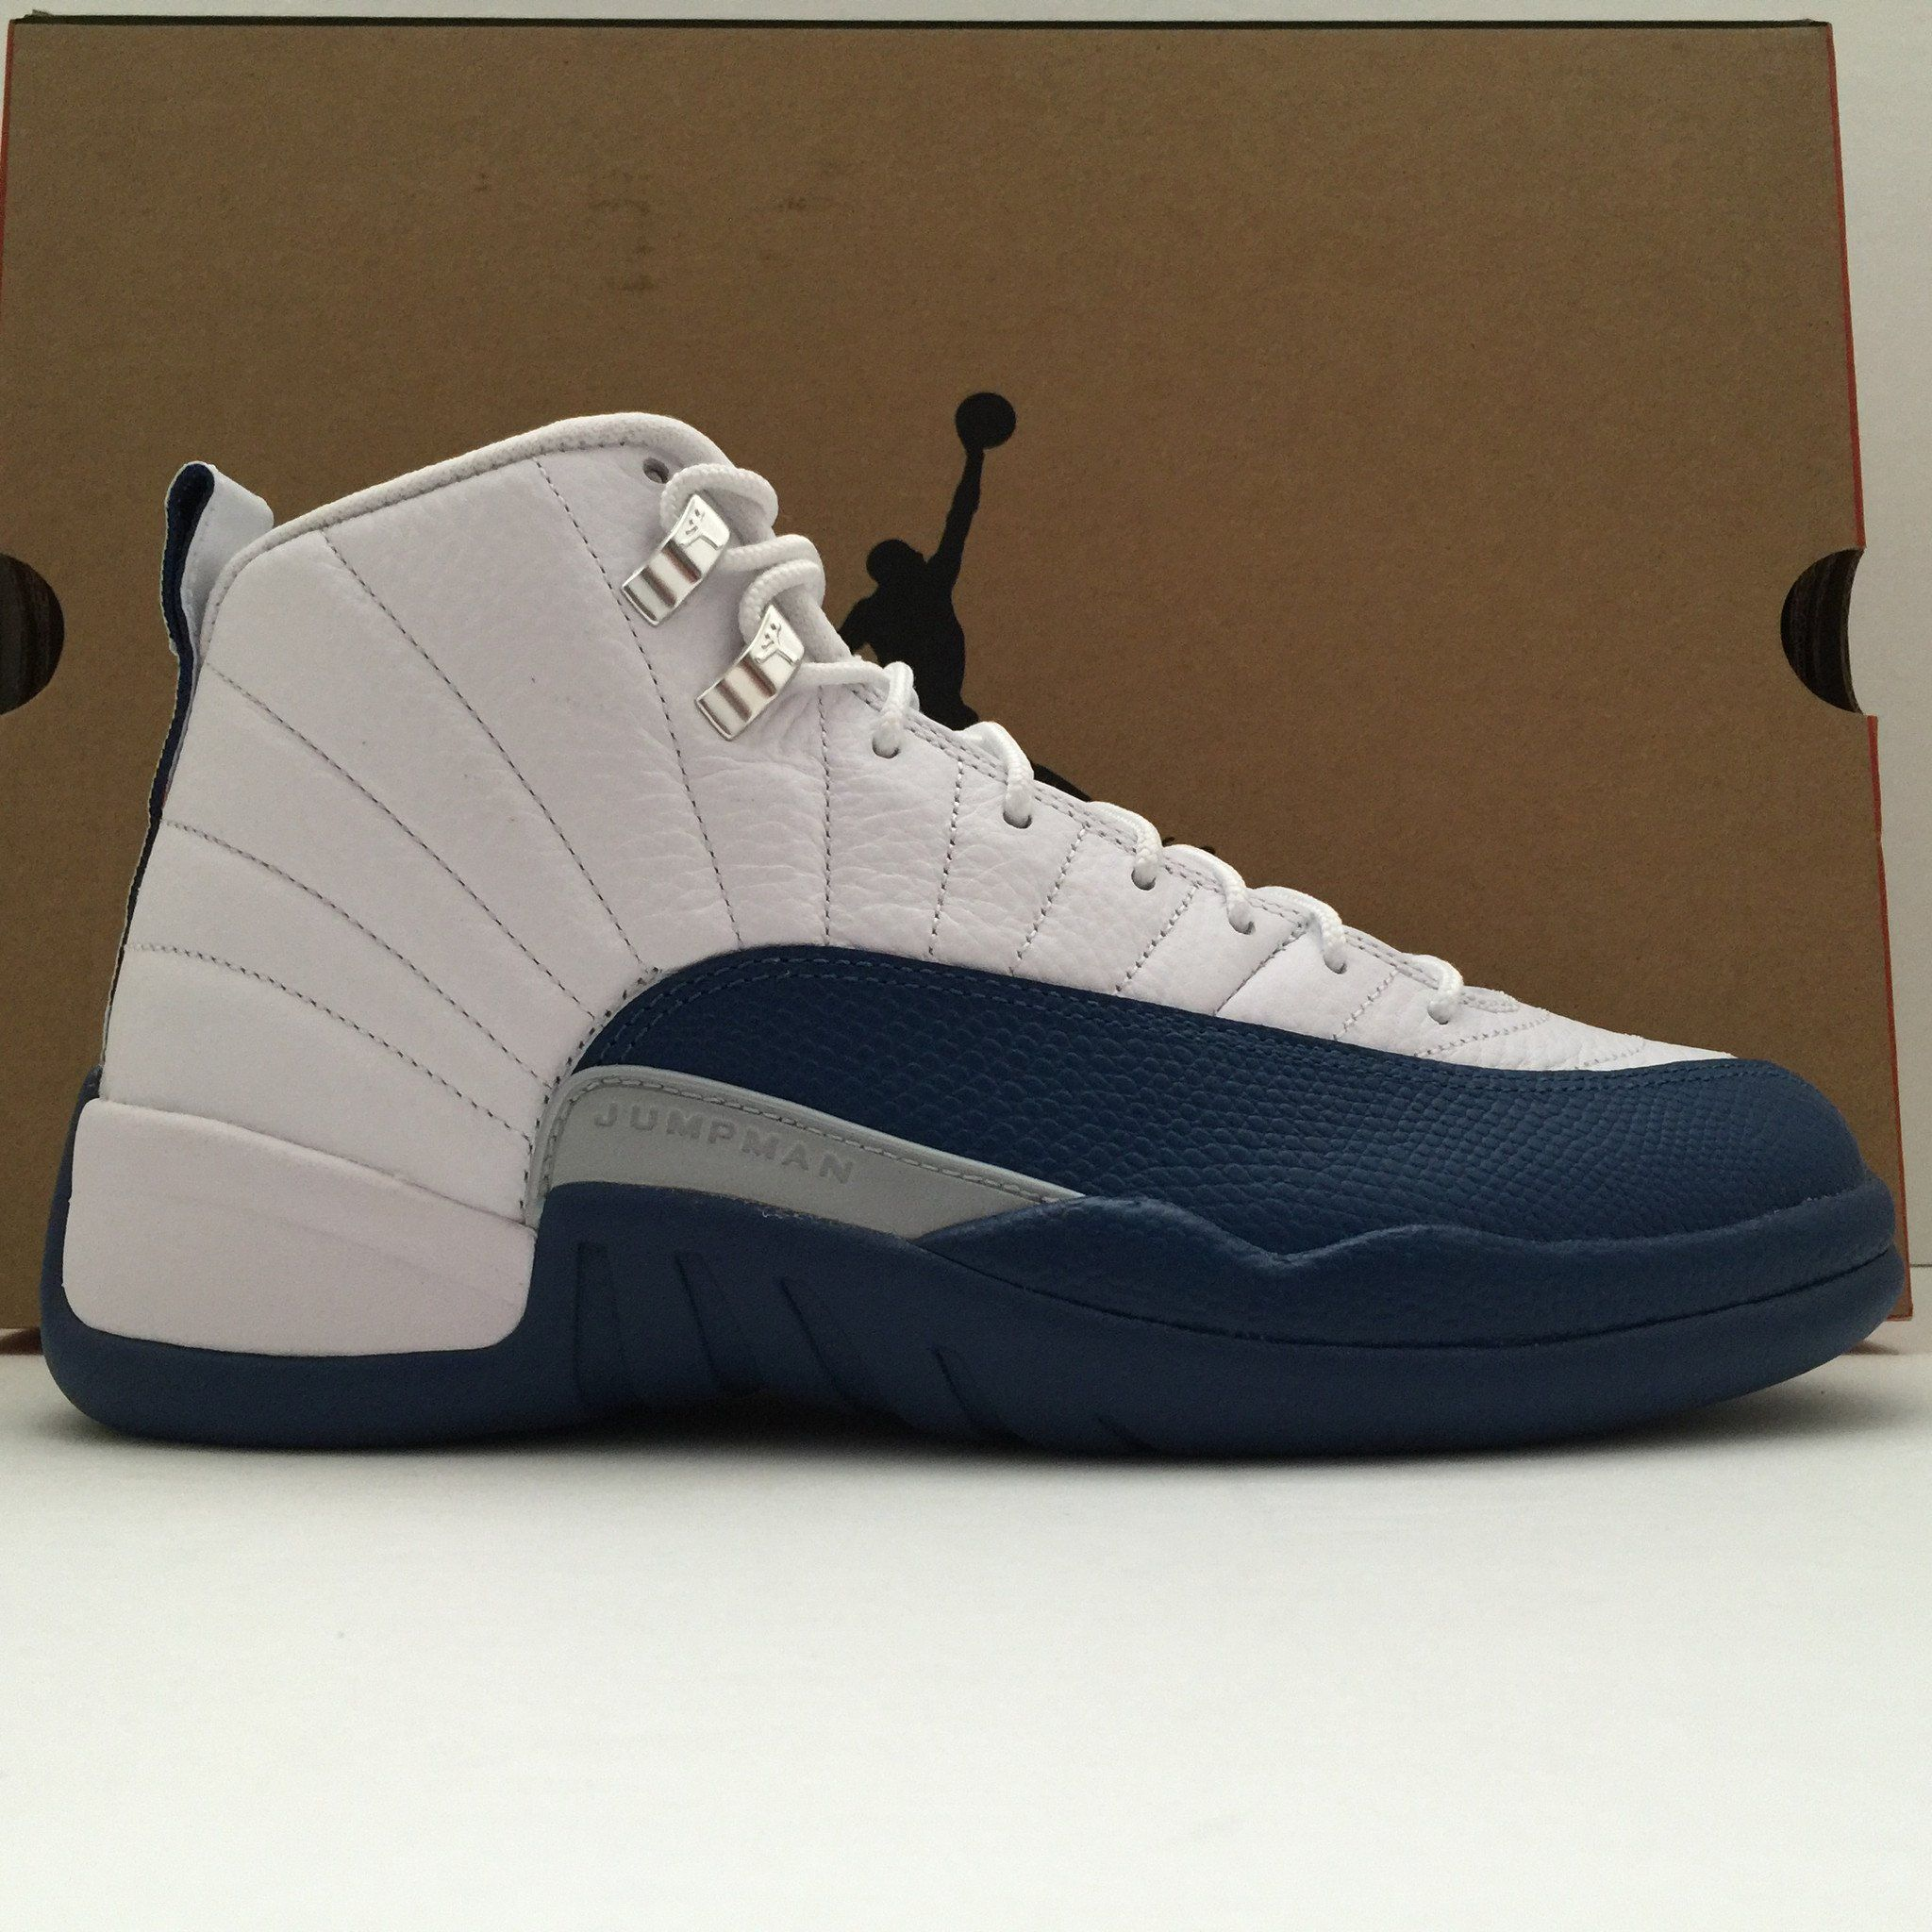 a3a15bdada7d7b DS Nike Air Jordan 12 XII French Blue Size 8 Size 8.5 Size 10 Size 10.5 -  DOPEFOOT - 1